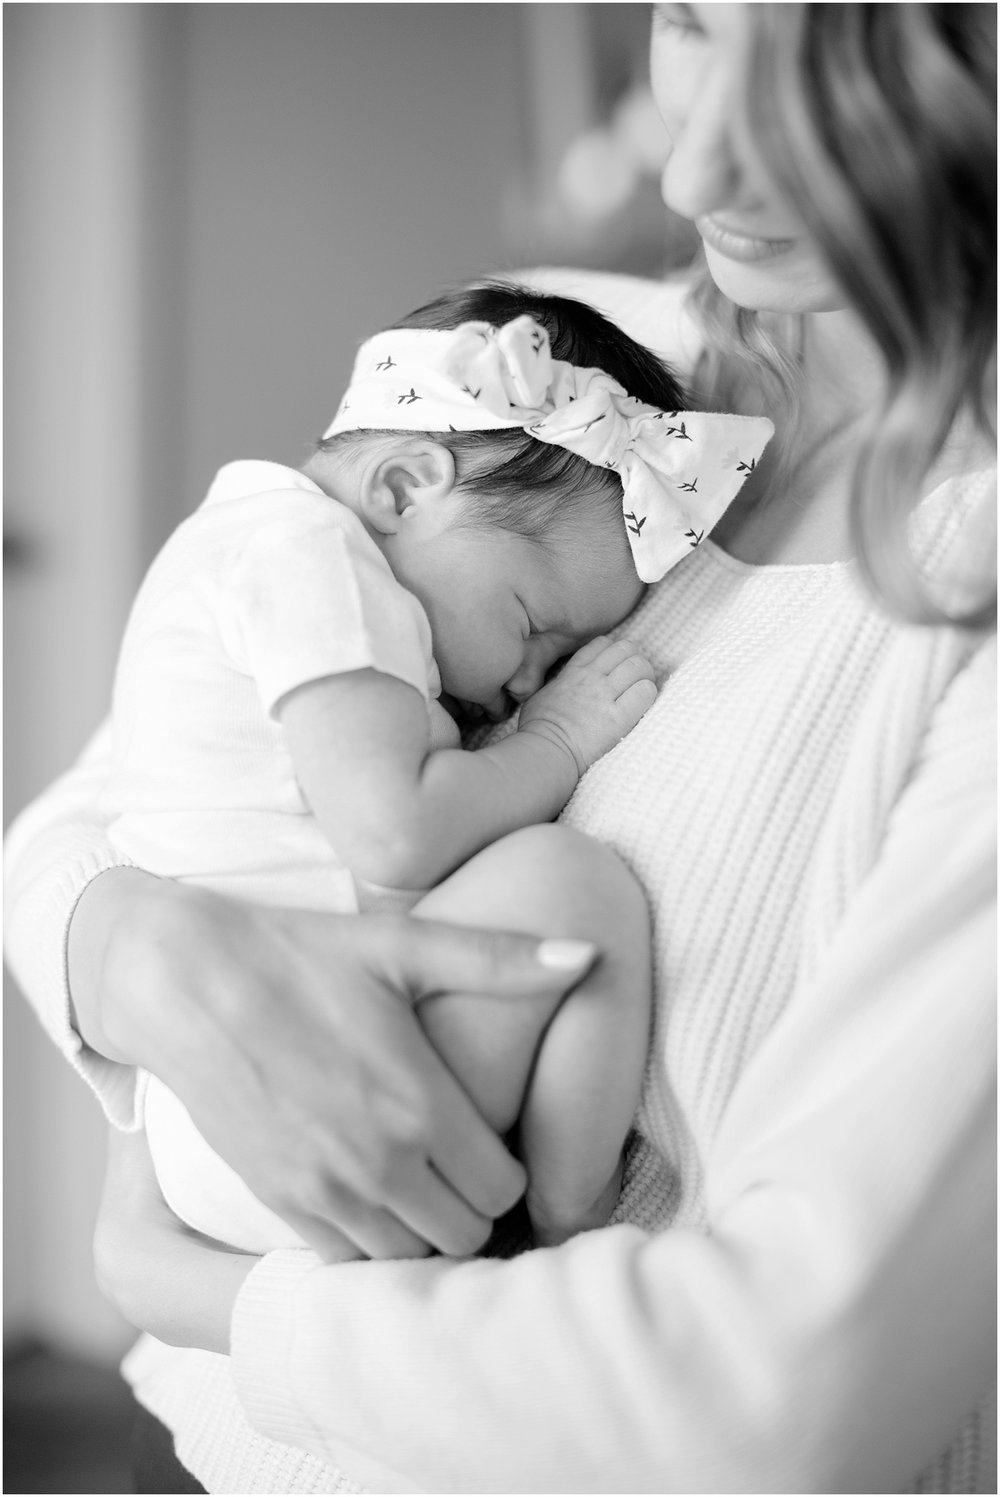 Ashley Powell Photography | Nora Newborn Session_0038.jpg